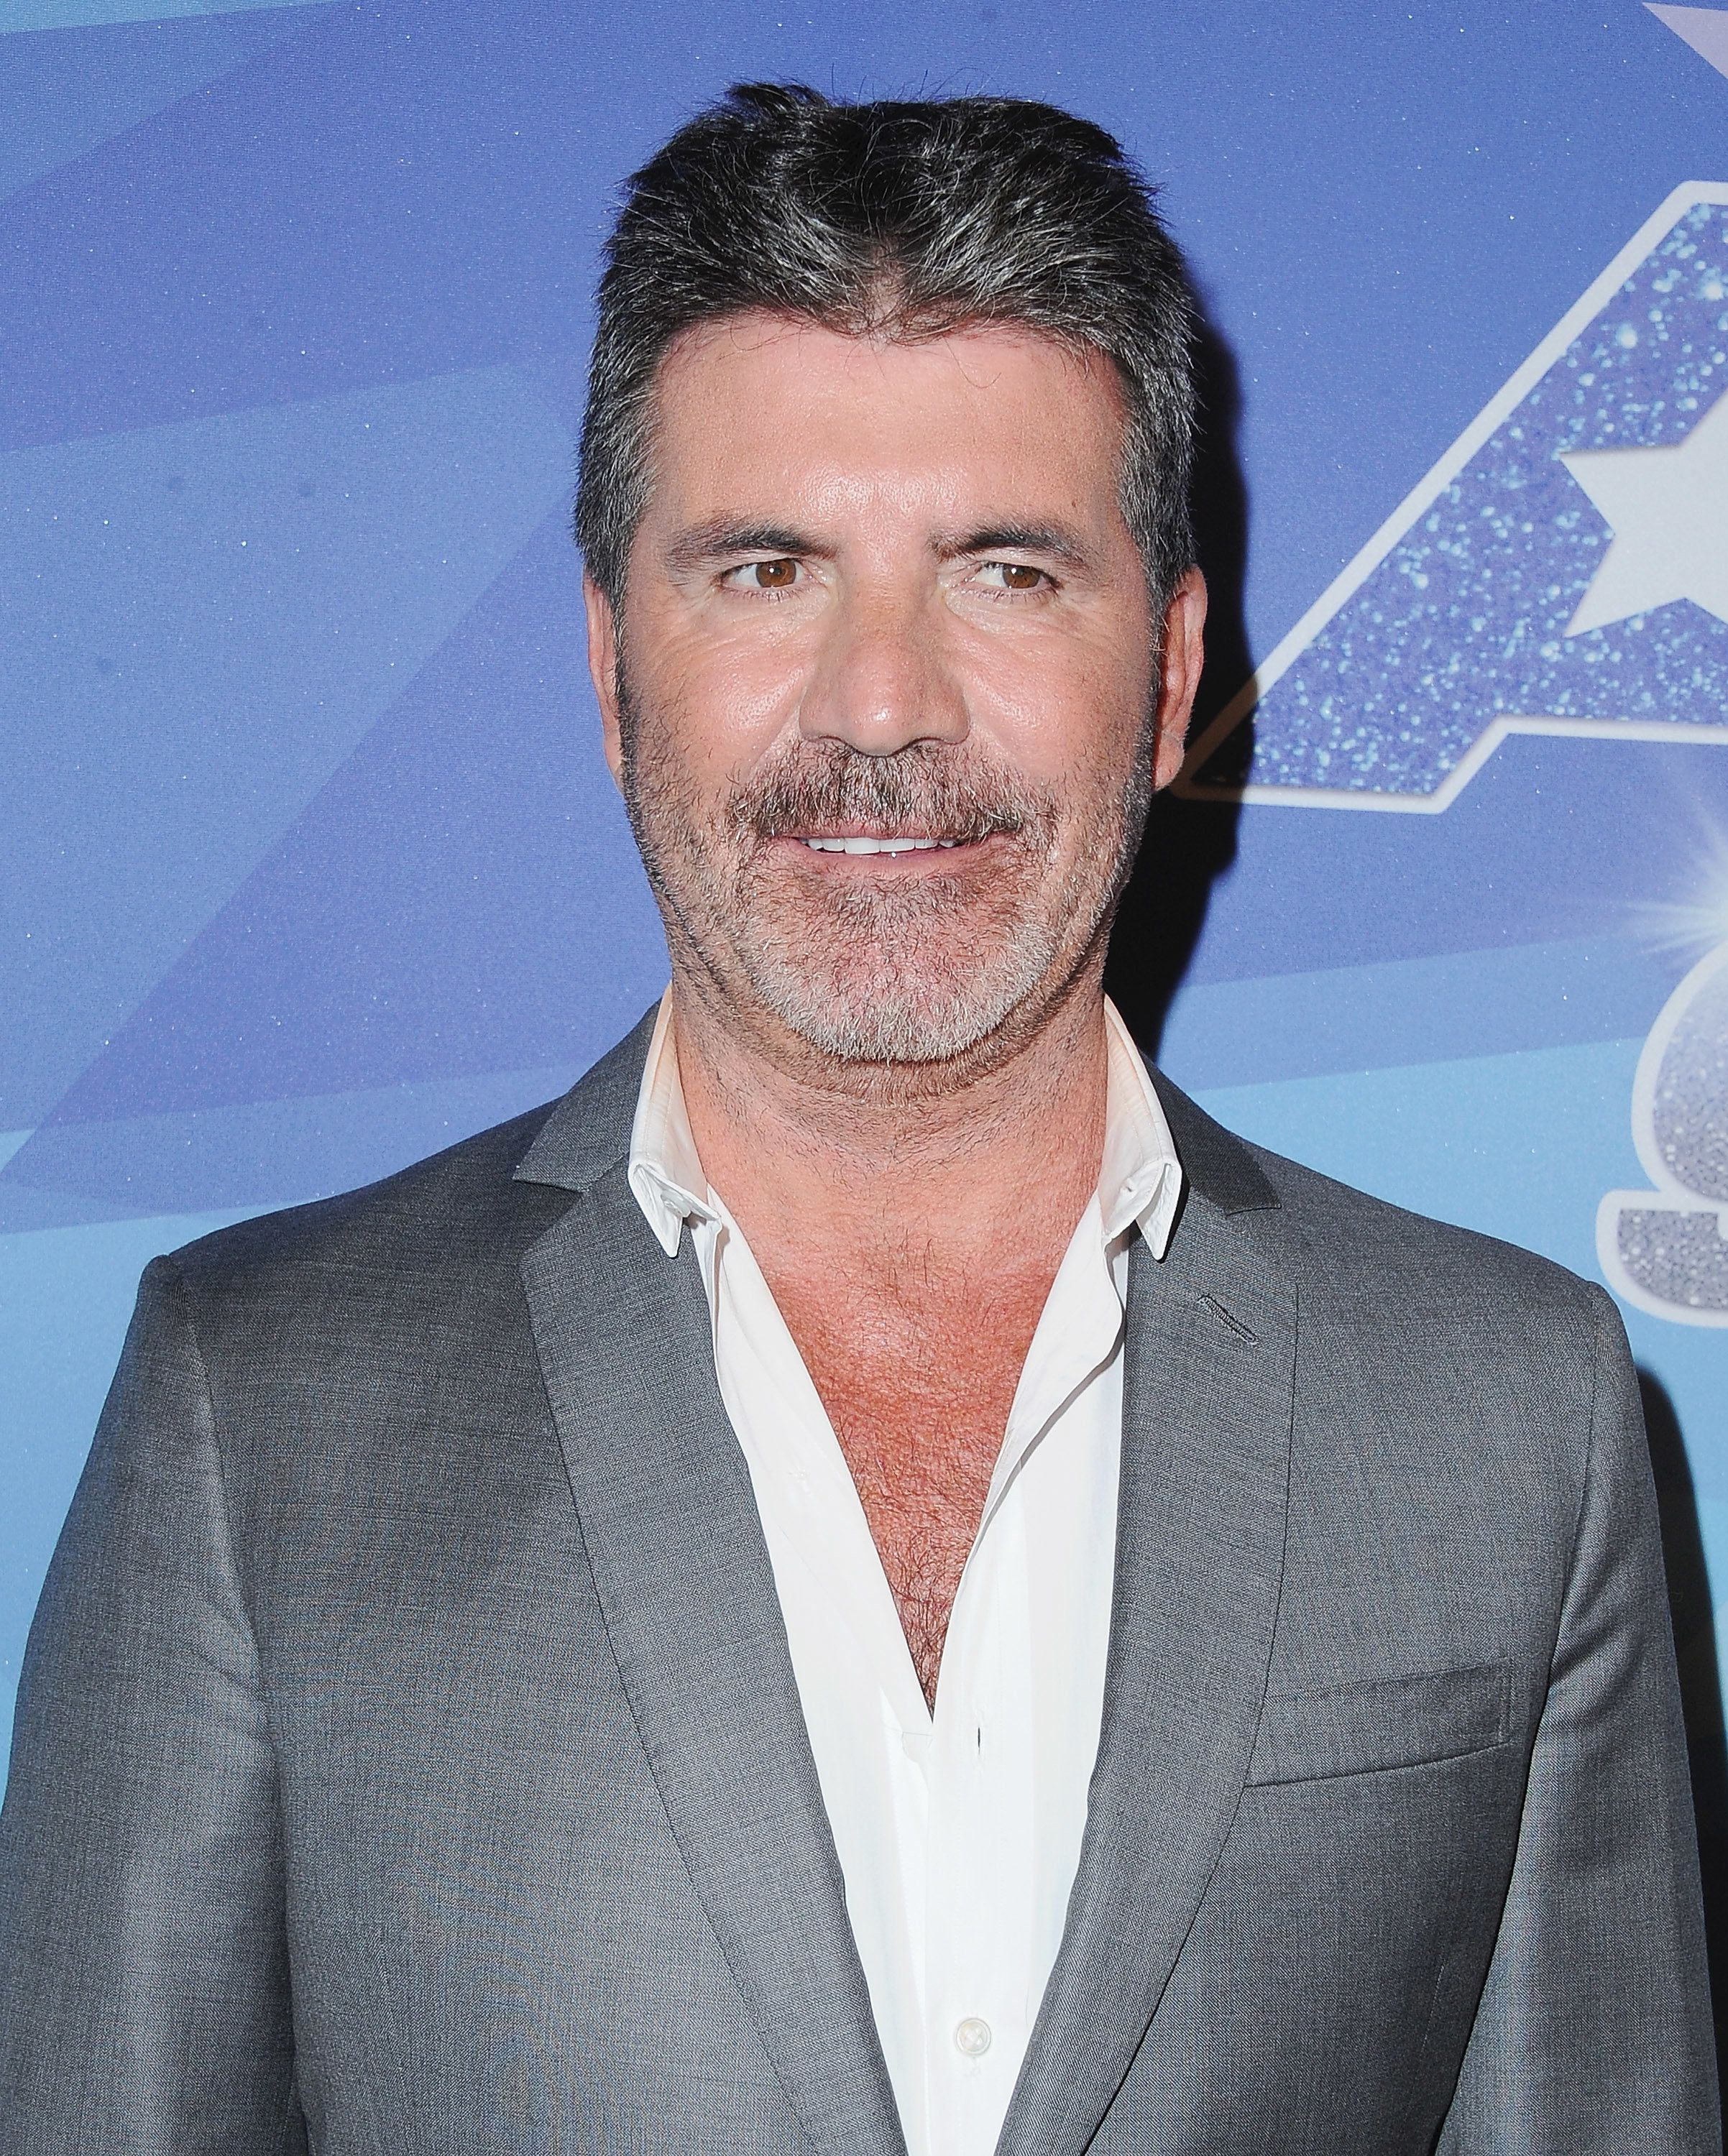 Simon Cowell Rushed To Hospital After Falling Down Stairs At London